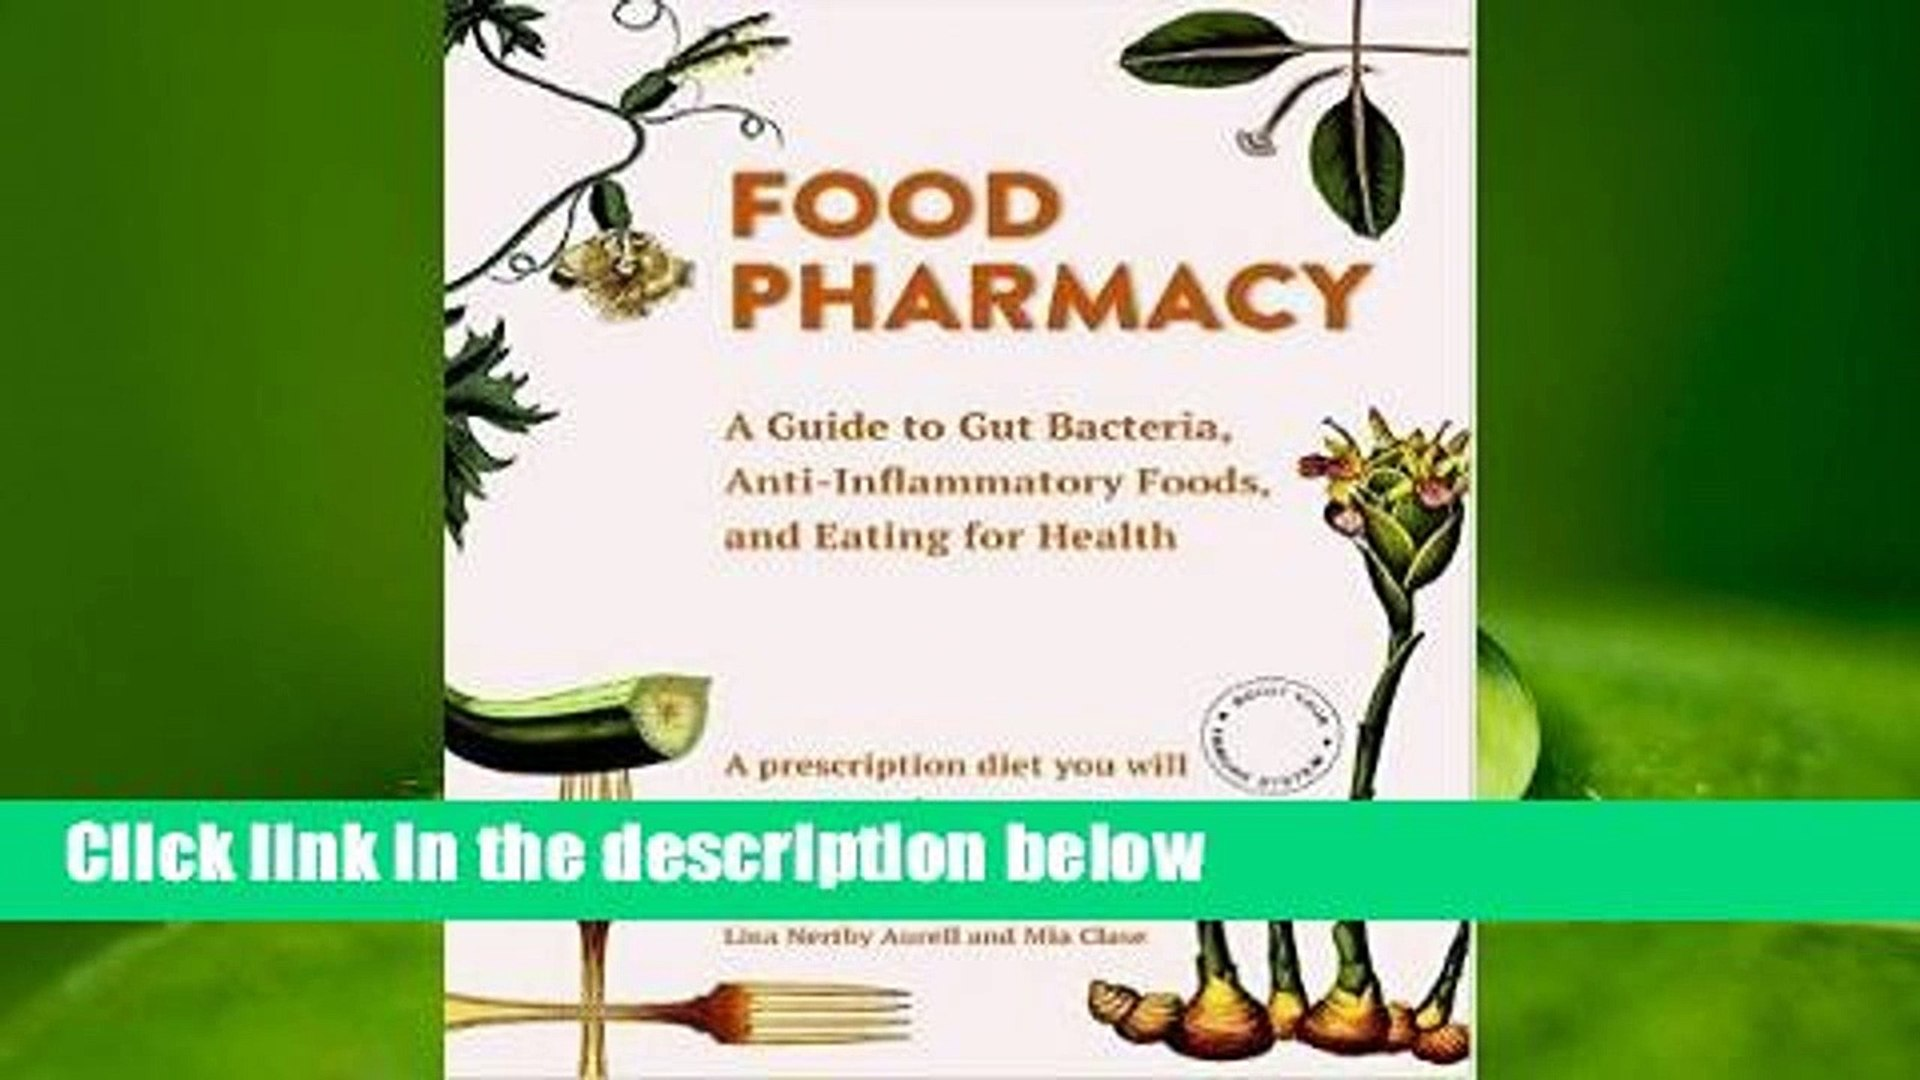 Full E-book  Food Pharmacy: A Guide to Gut Bacteria, Anti-Inflammatory Foods, and Eating for